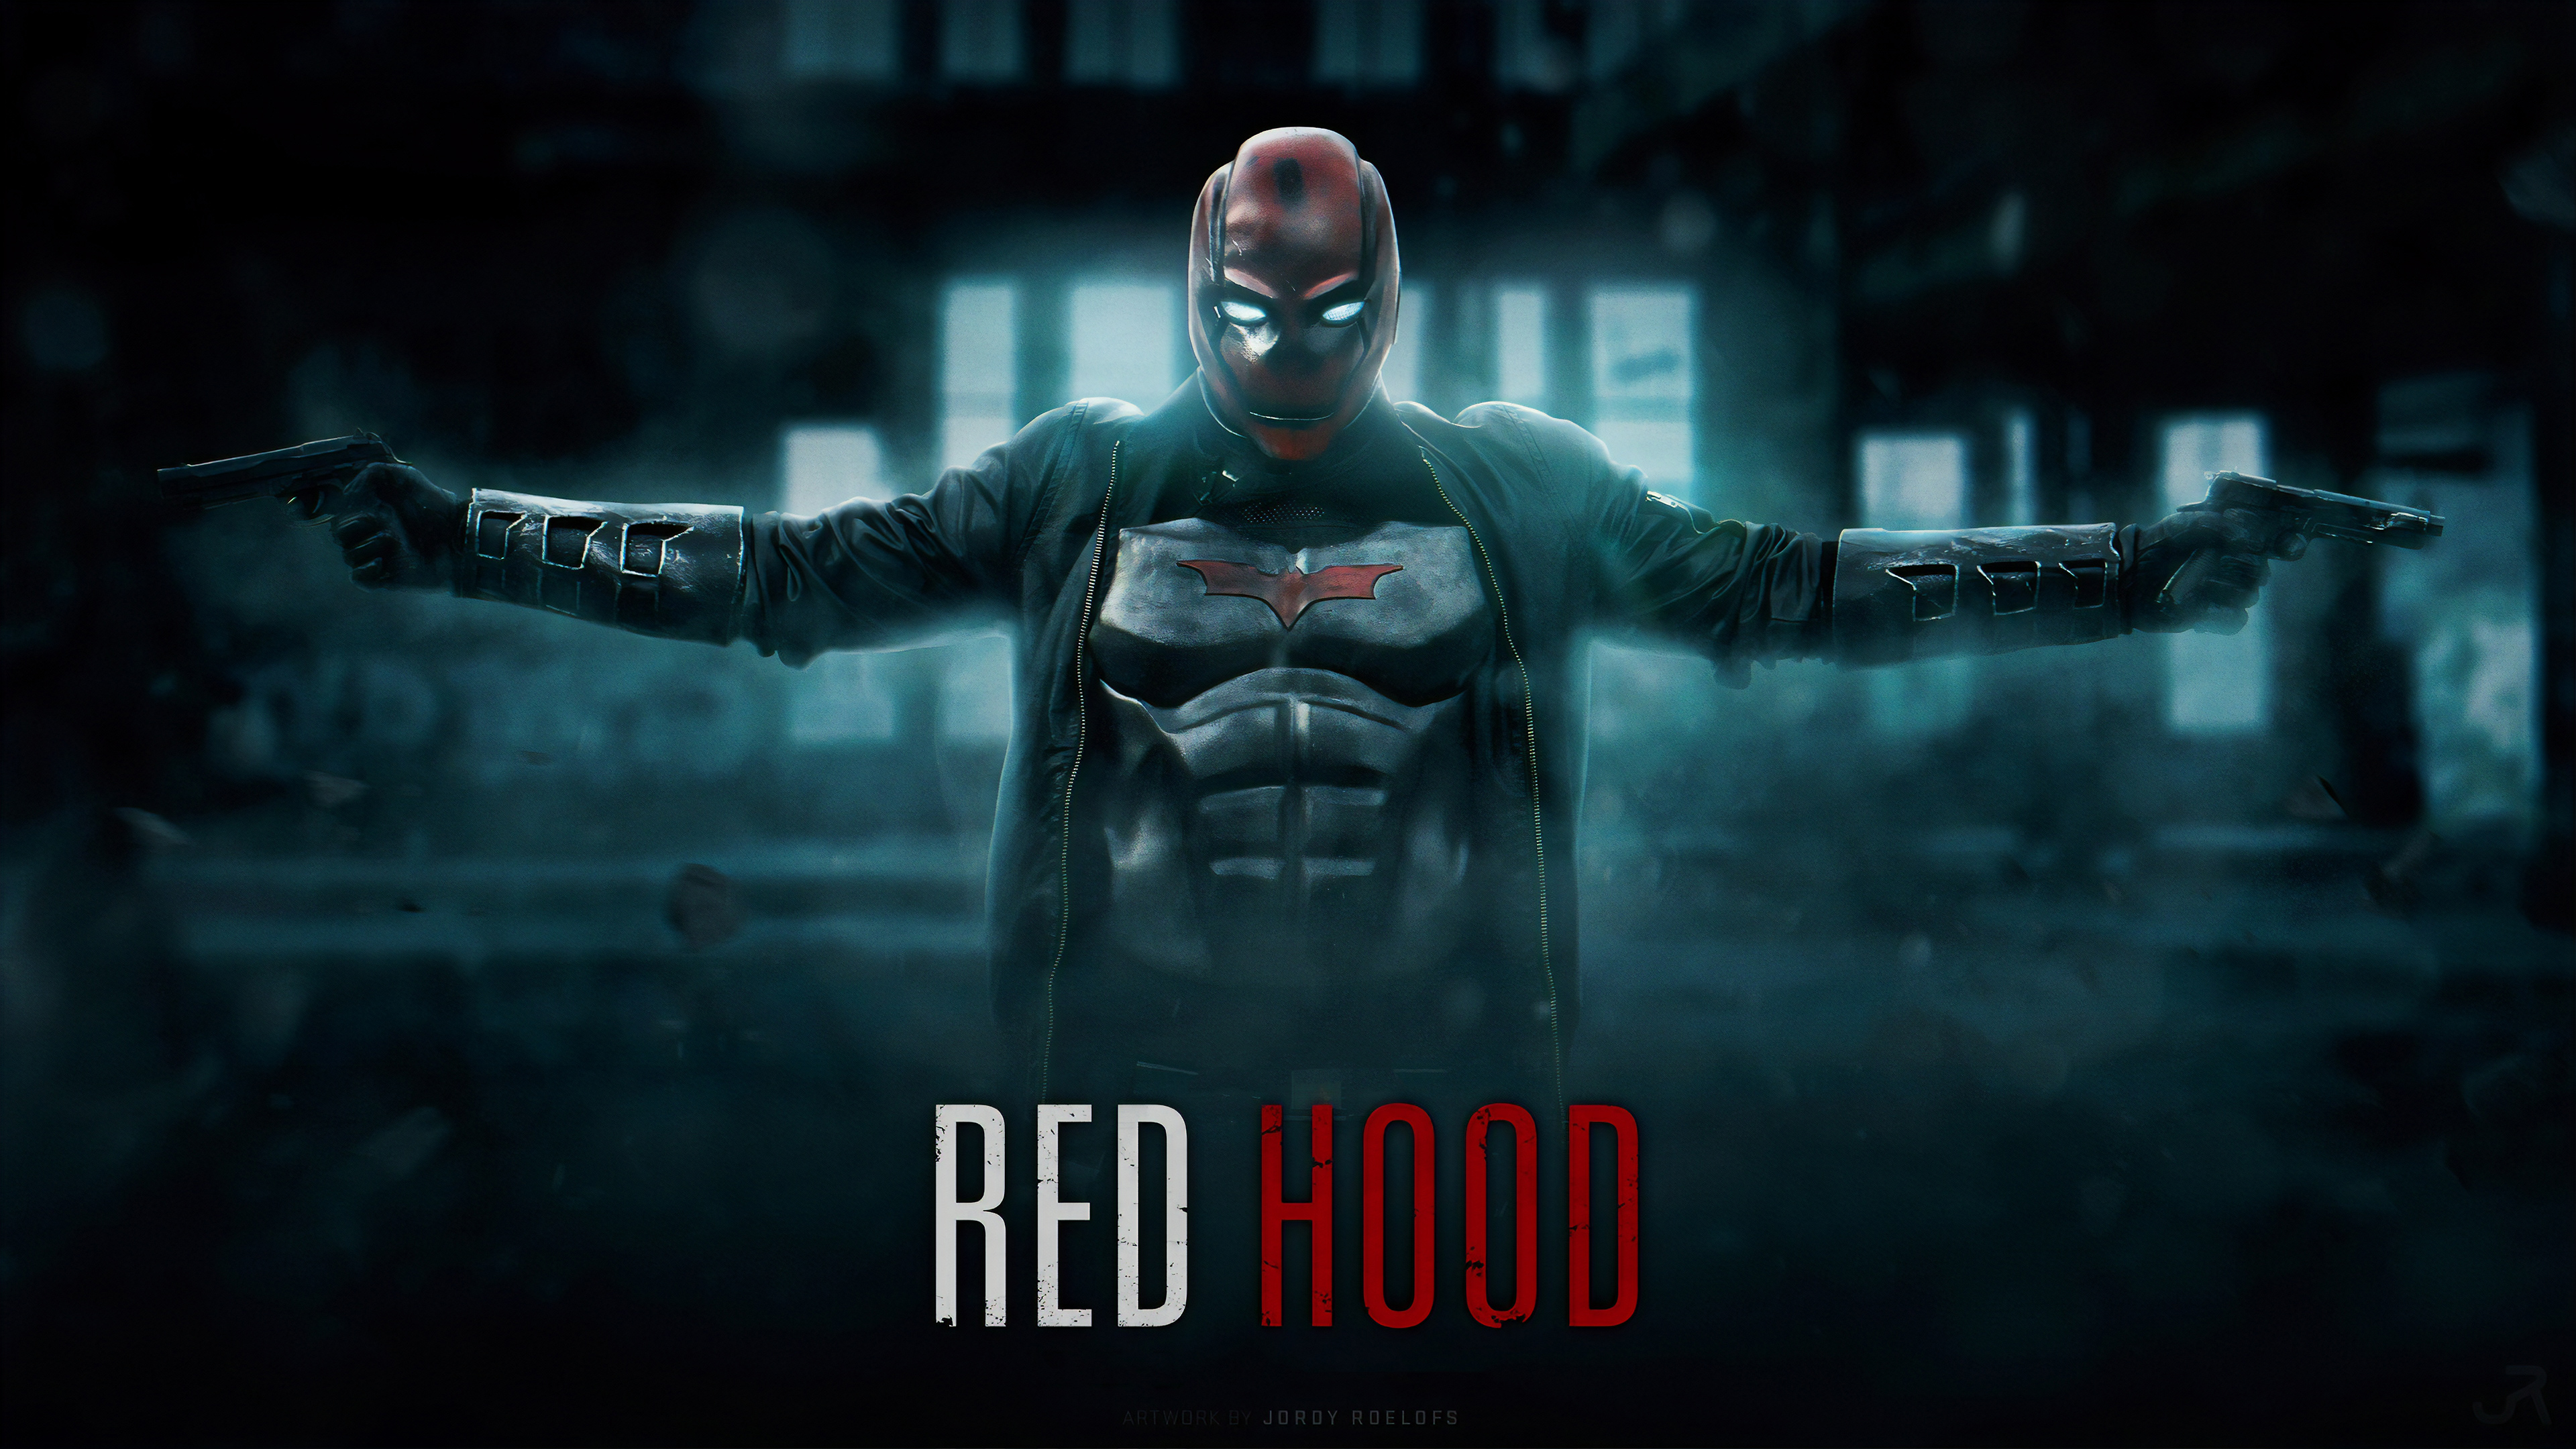 Pin on Red hood